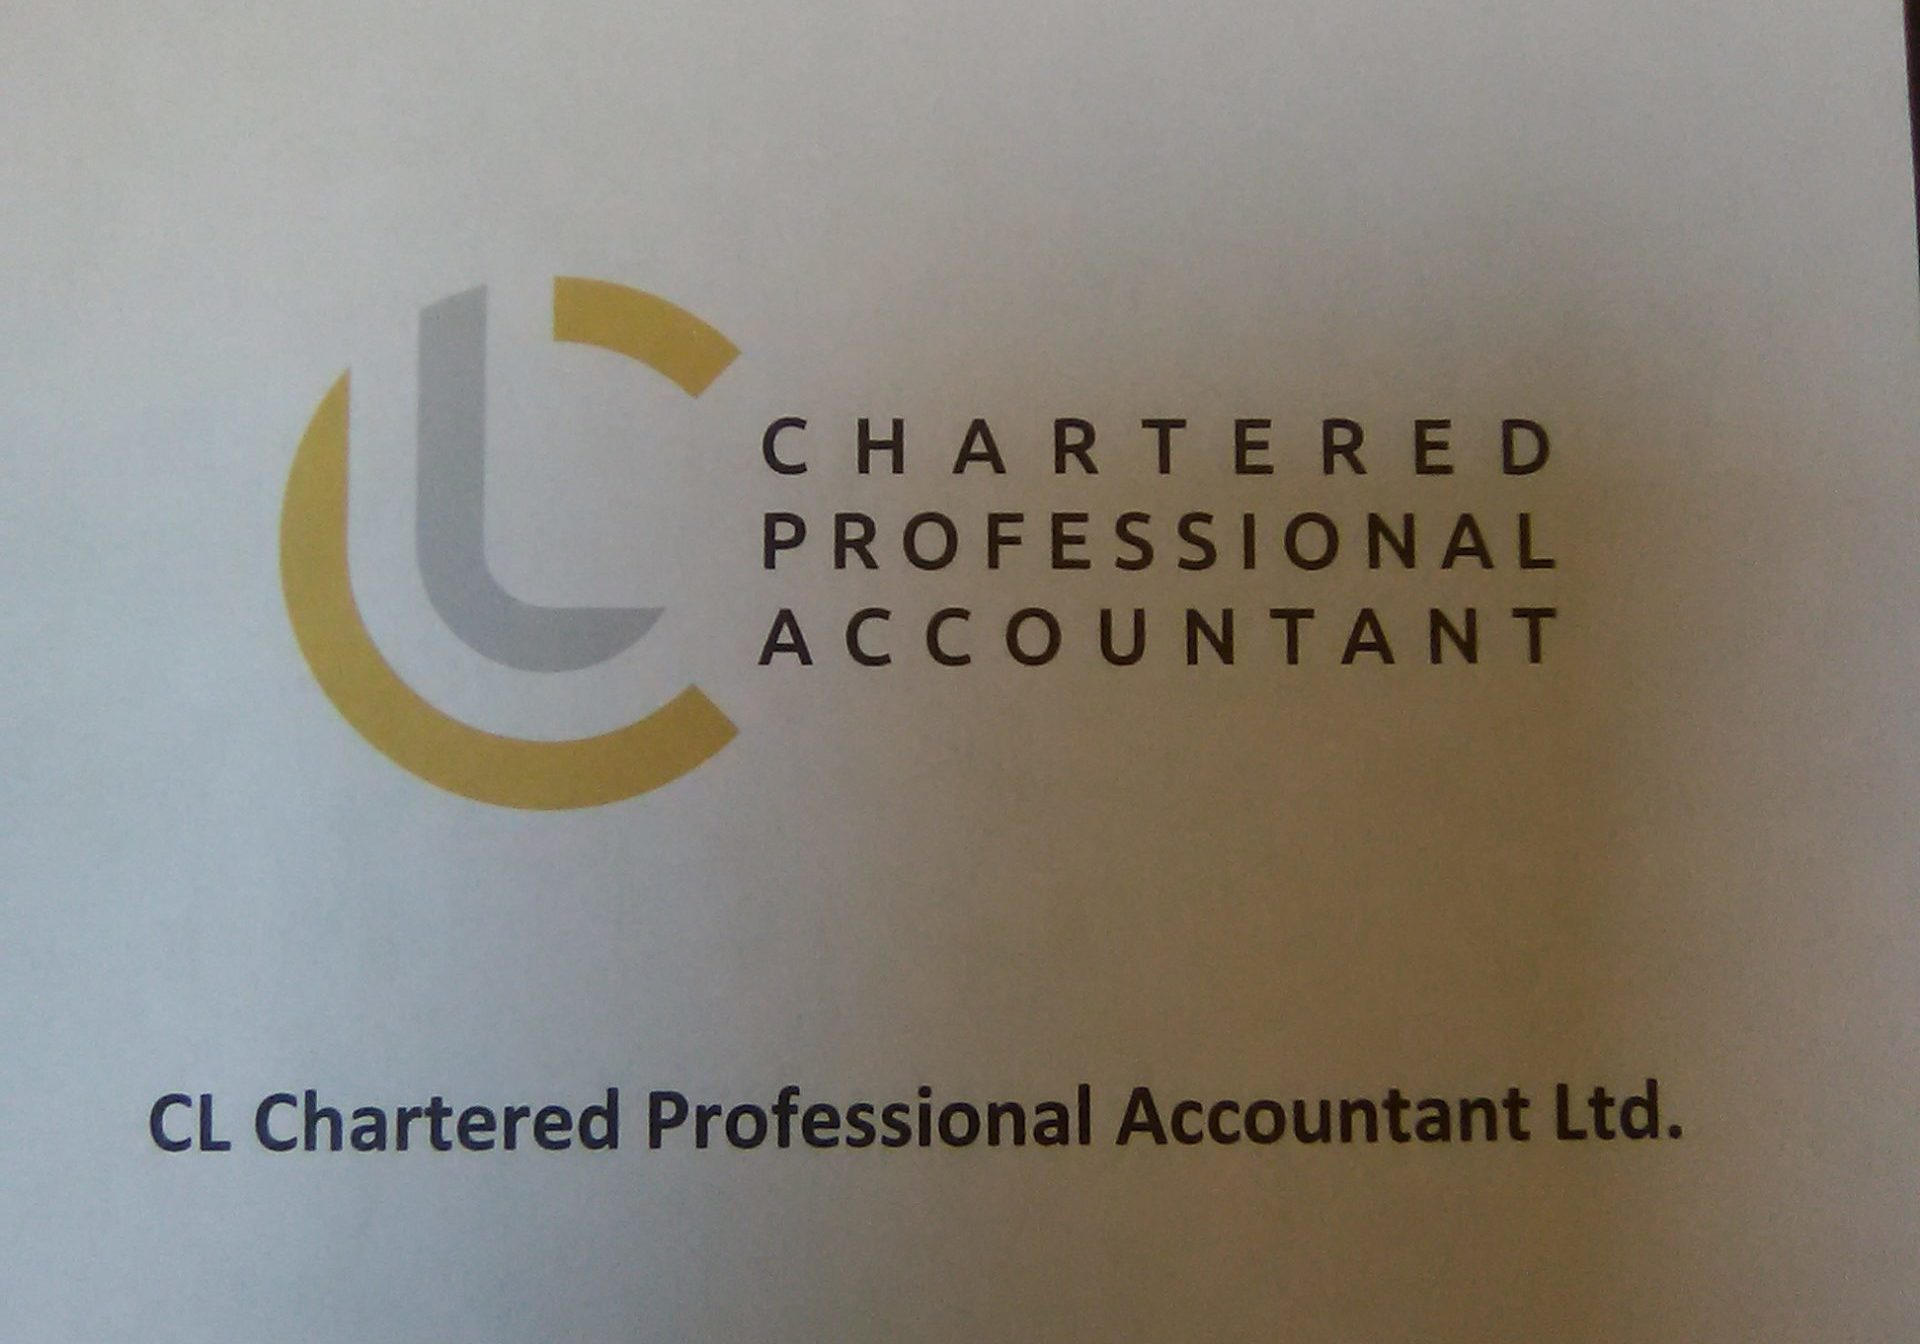 CL Chartered Professional Accountant Ltb